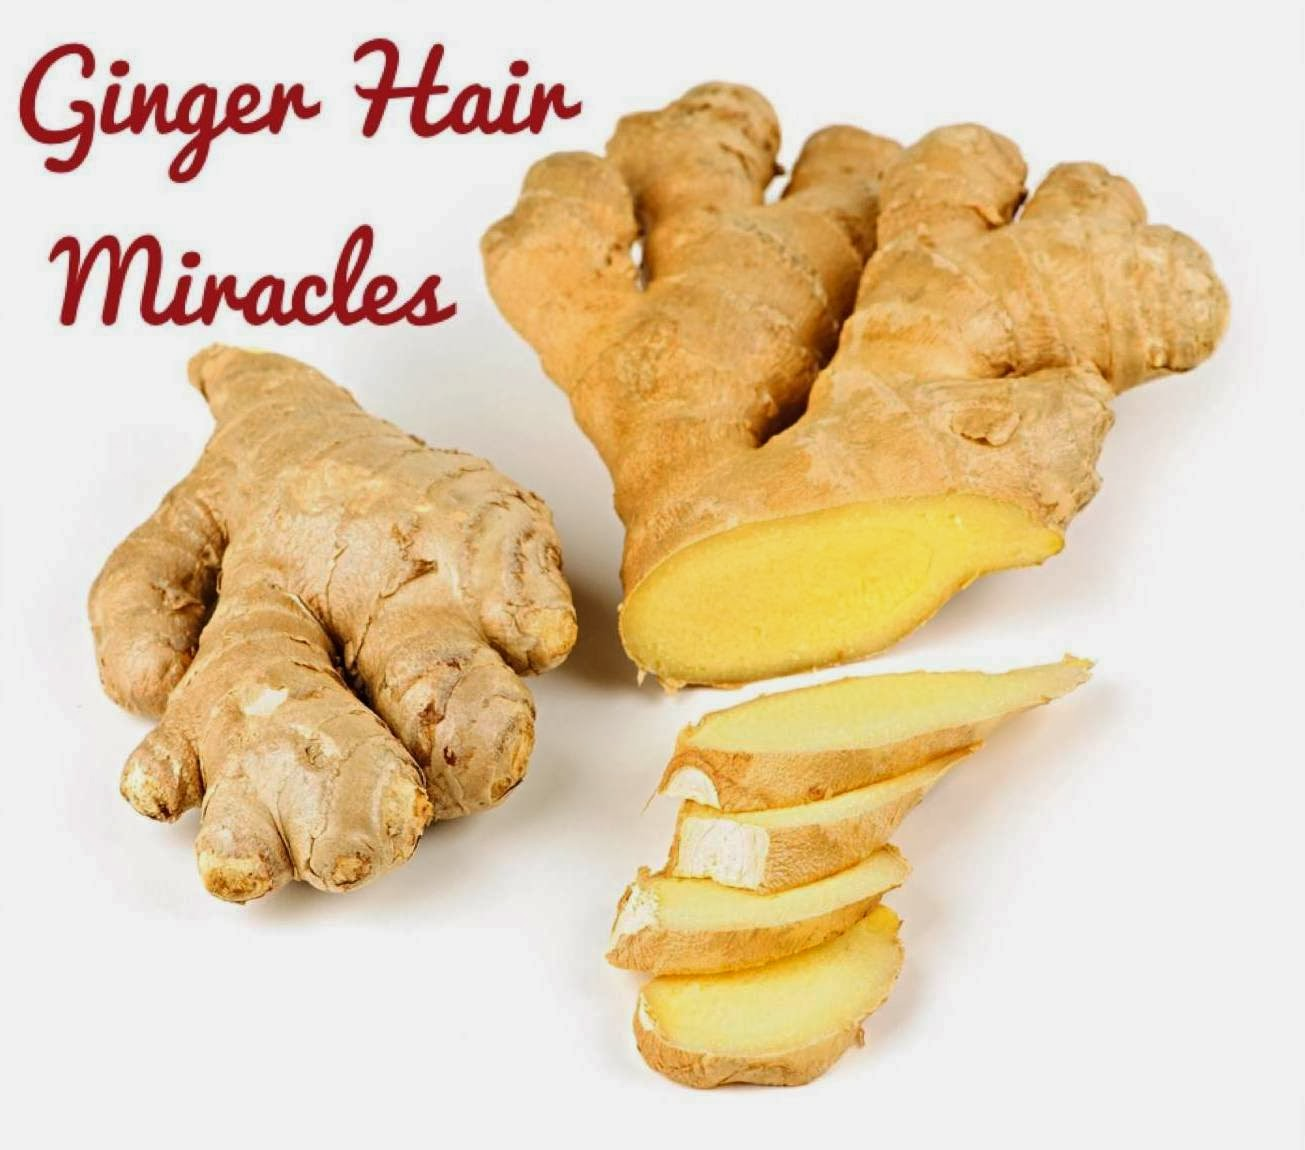 Ginger health, ginger for health, ginger health benefits, ginger oil health benefits, ginger pulp health benefits, ginger juice health benefits, Ginger hair, ginger for hair, ginger hair benefits, ginger oil hair benefits, ginger pulp hair benefits, ginger juice hair benefits, Ginger , ginger tea, ginger uses, ginger benefits , ginger uses and benefits, ginger tea uses and benefits, ginger oil, ginger oil uses , ginger oil uses and benefits, ginger oil benefits, ginger juice, ginger juice uses, ginger juice benefits, ginger juice uses and benefits, ginger pulp, ginger pulp uses, ginger pulp benefits, ginger pulp uses and benefits, ginger uses for hair, ginger benefits  for hair, ginger uses and benefits for hair, ginger tea uses and benefits  for hair, ginger oil  for hair, ginger oil uses for hair, ginger oil uses and benefits for hair, ginger oil benefits  for hair, ginger juice for hair, ginger juice uses for hair, ginger juice benefits for hair, ginger juice uses and benefits for hair, ginger pulp for hair , ginger pulp uses for hair, ginger pulp benefits for hair, ginger pulp uses and benefits for hair, winter dandruff, dandruff in winters, dandruff in snow, dandruff in snow season, dandruff in winter season, dandruff in cold, dandruff in cold season, dandruff in winter months, winter dandruff, snow dandruff, cold dandruff, dry dandruff, difference between summer and winter dandruff, anti dandruff home remedies for winters, anti dandruff home remedies for winter season, anti dandruff home remedies for cold weather, anti dandruff home remedies for snow weather,Home remedies foe dandruff,home remedies, dandruff treatment,Lemon,vinegar,Oil,Coconut oil,mustard oil,olive oil,camphor,castor oil,dandruff,dandruff treatment at home,India,hair,long hair,pretty,beautiful,dandruff free hair,anti dandruff treatment.,clean hair,clear dandruff,beautiful hair,treating dandruff at home,treat dandruff with things in kitchen,treat dandruff with vinegar, treat dandruff with lemon